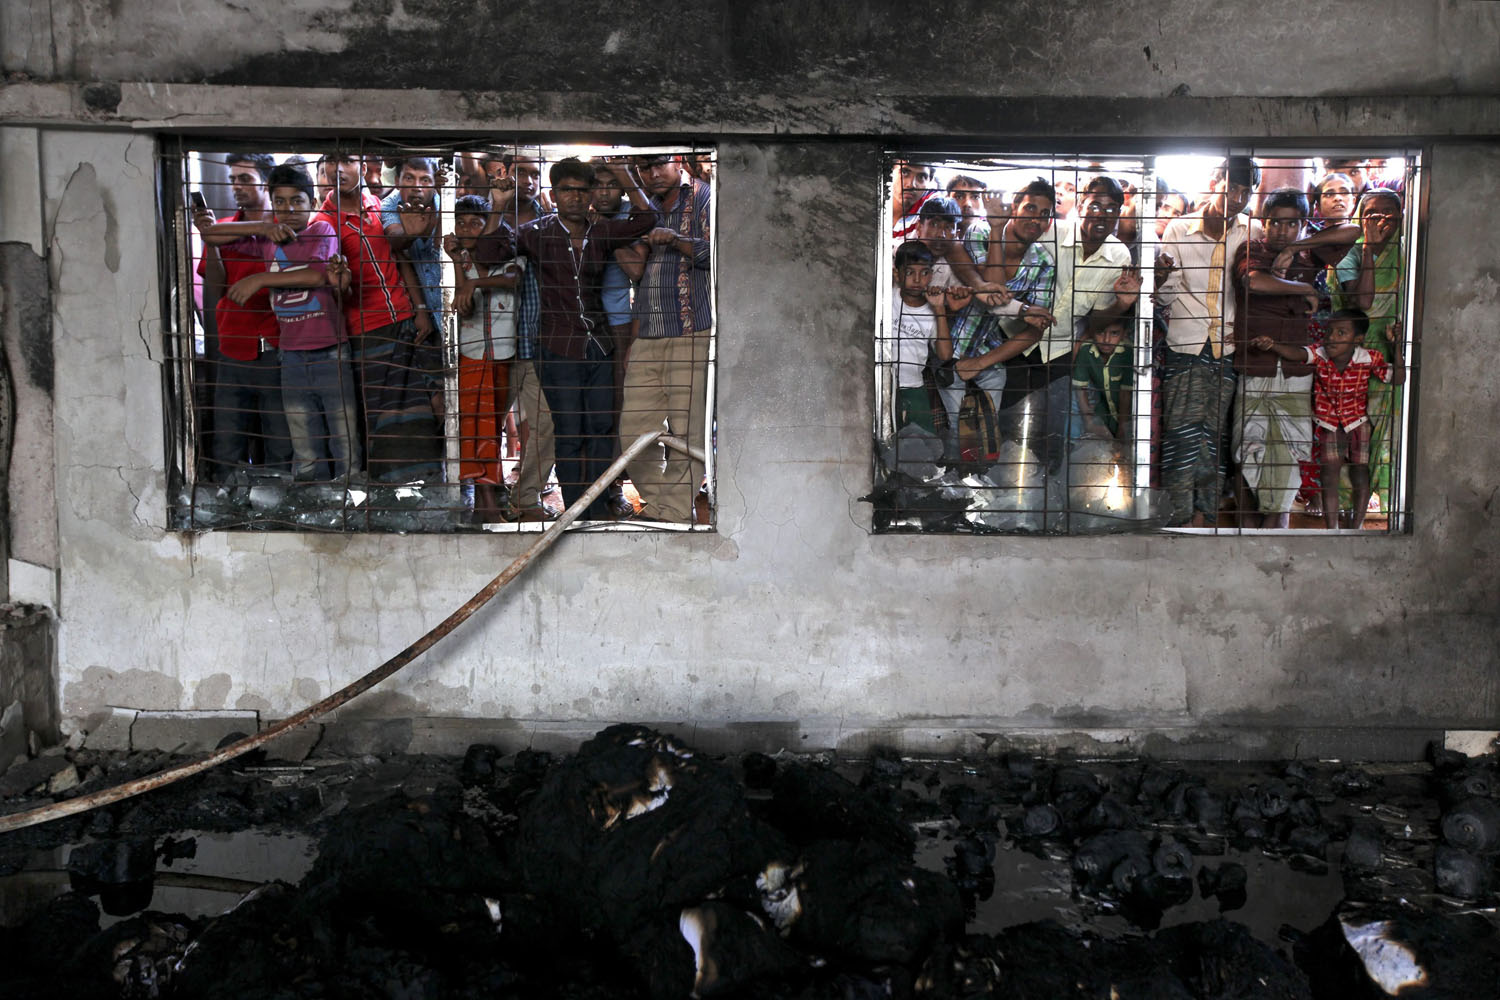 Oct. 9, 2013. People watch the rescue operation from outside the factory after a devastating fire at the dyeing section of two-storey Aswad Composite Mills at Maona, Gazipur, Bangladesh.